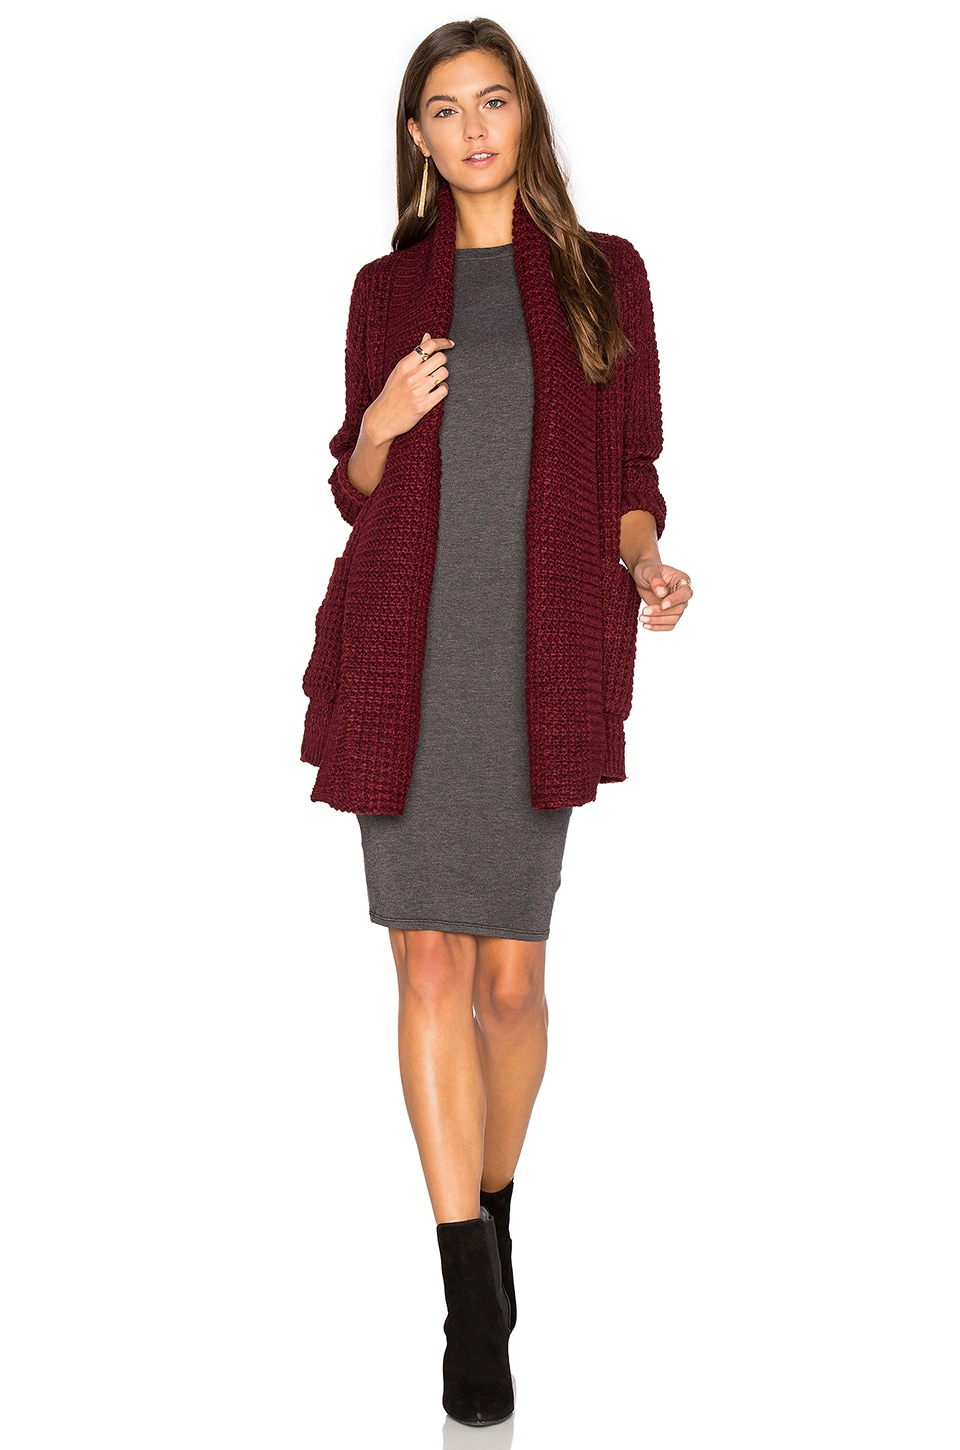 John & Jenn by Line Manon Cardigan in Scarlet